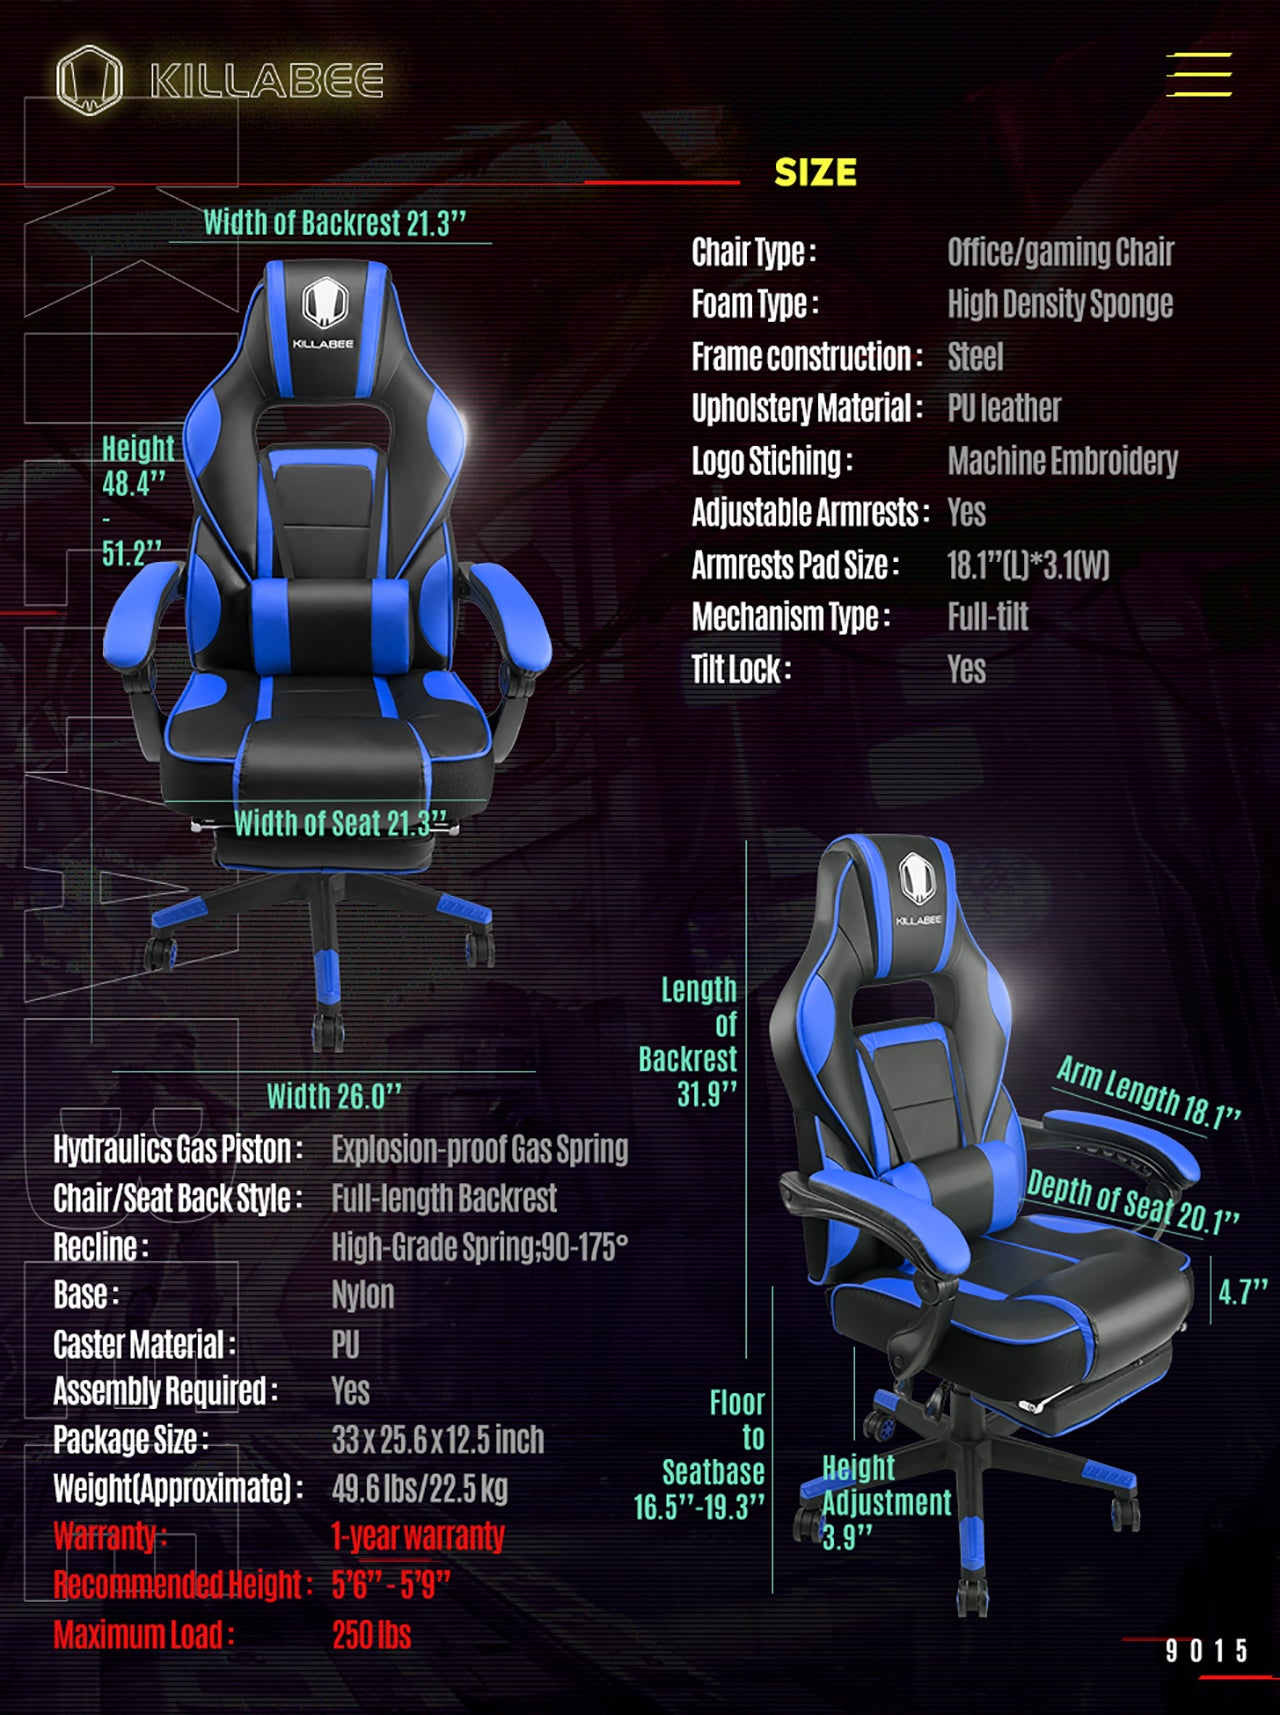 KILLABEE MASSAGE GAMING CHAIR 9015 BLUE SPECIFICATION